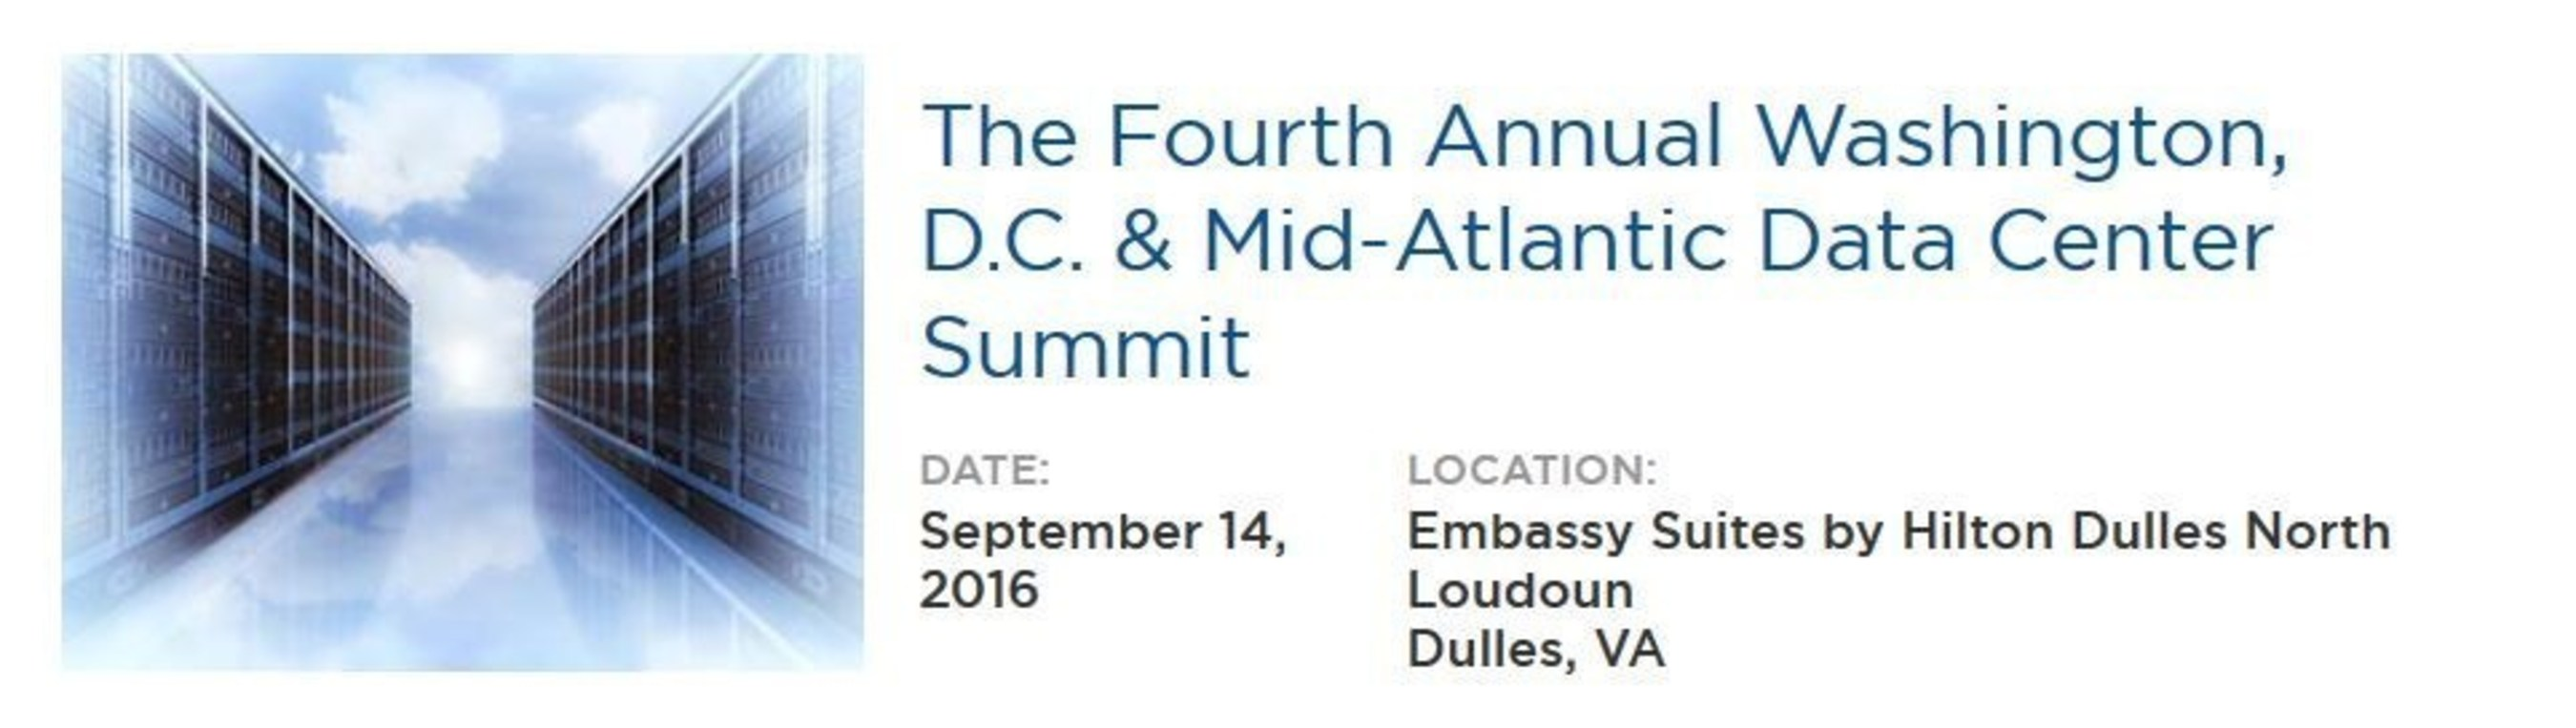 Attendance Building for The Fourth Annual Washington, D.C. & Mid-Atlantic Data Center Summit - September 14-16, Dulles, VA; Look Who's Attending